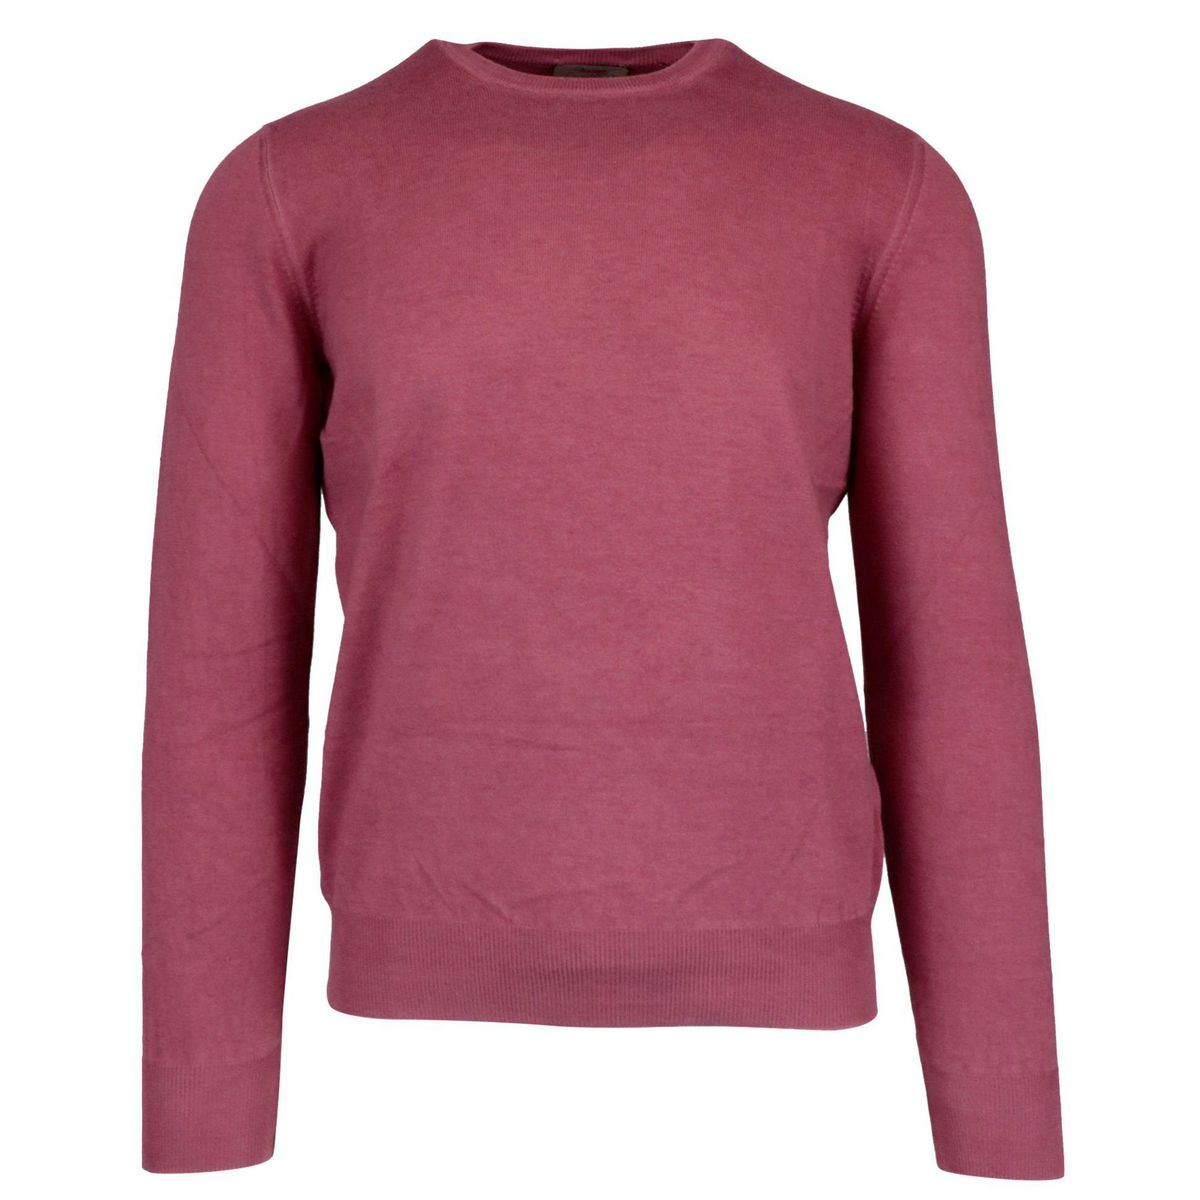 Crew neck sweater in solid color with ribbed profiles Antique pink Gran Sasso